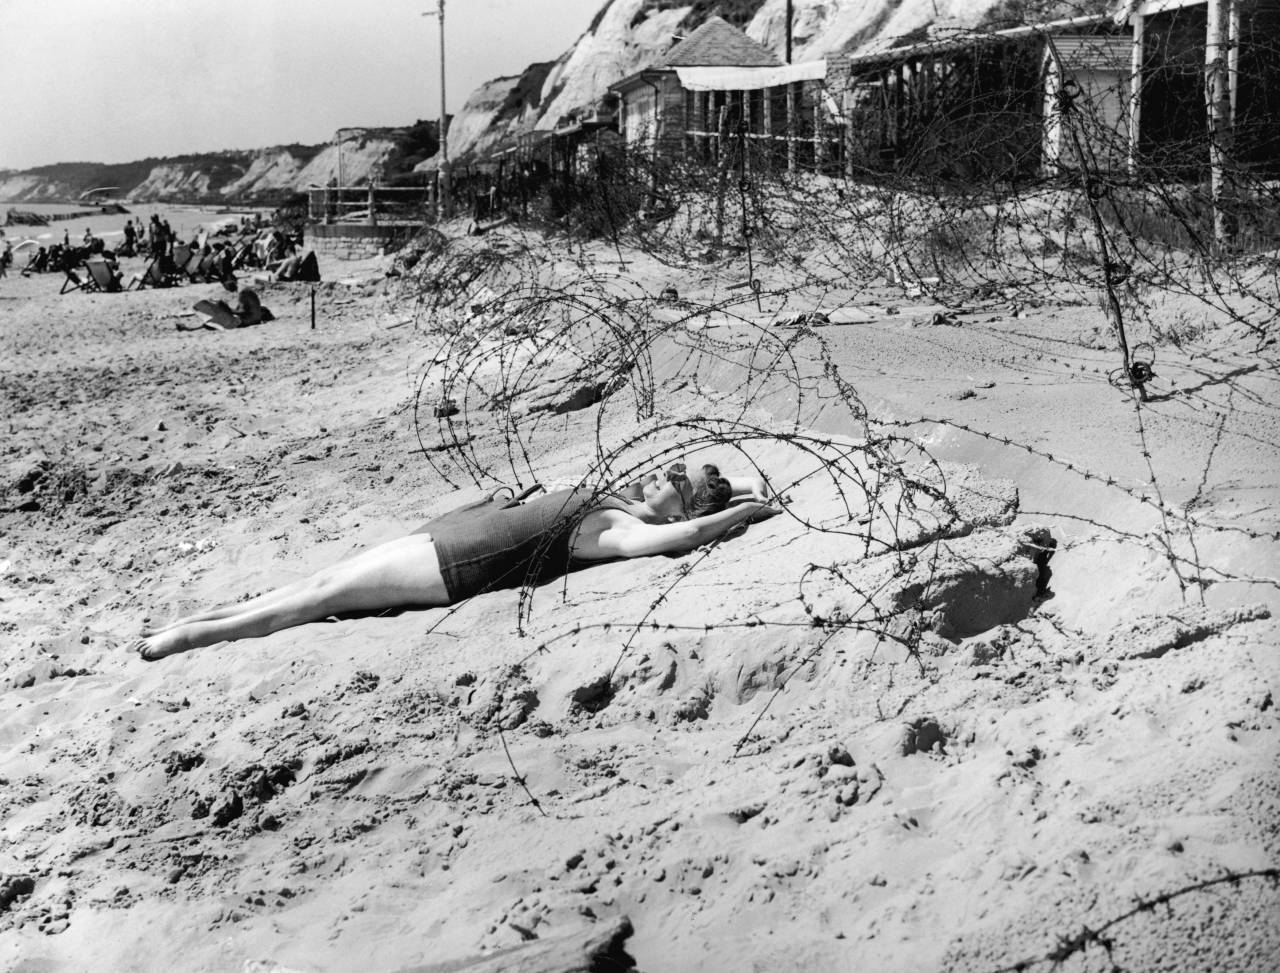 A woman sunbathes on a wartime bank holiday surrounded by barbed wire on the beach at Bournemouth, 7th August 1944.  (Photo by Topical Press Agency/Hulton Archive/Getty Images)